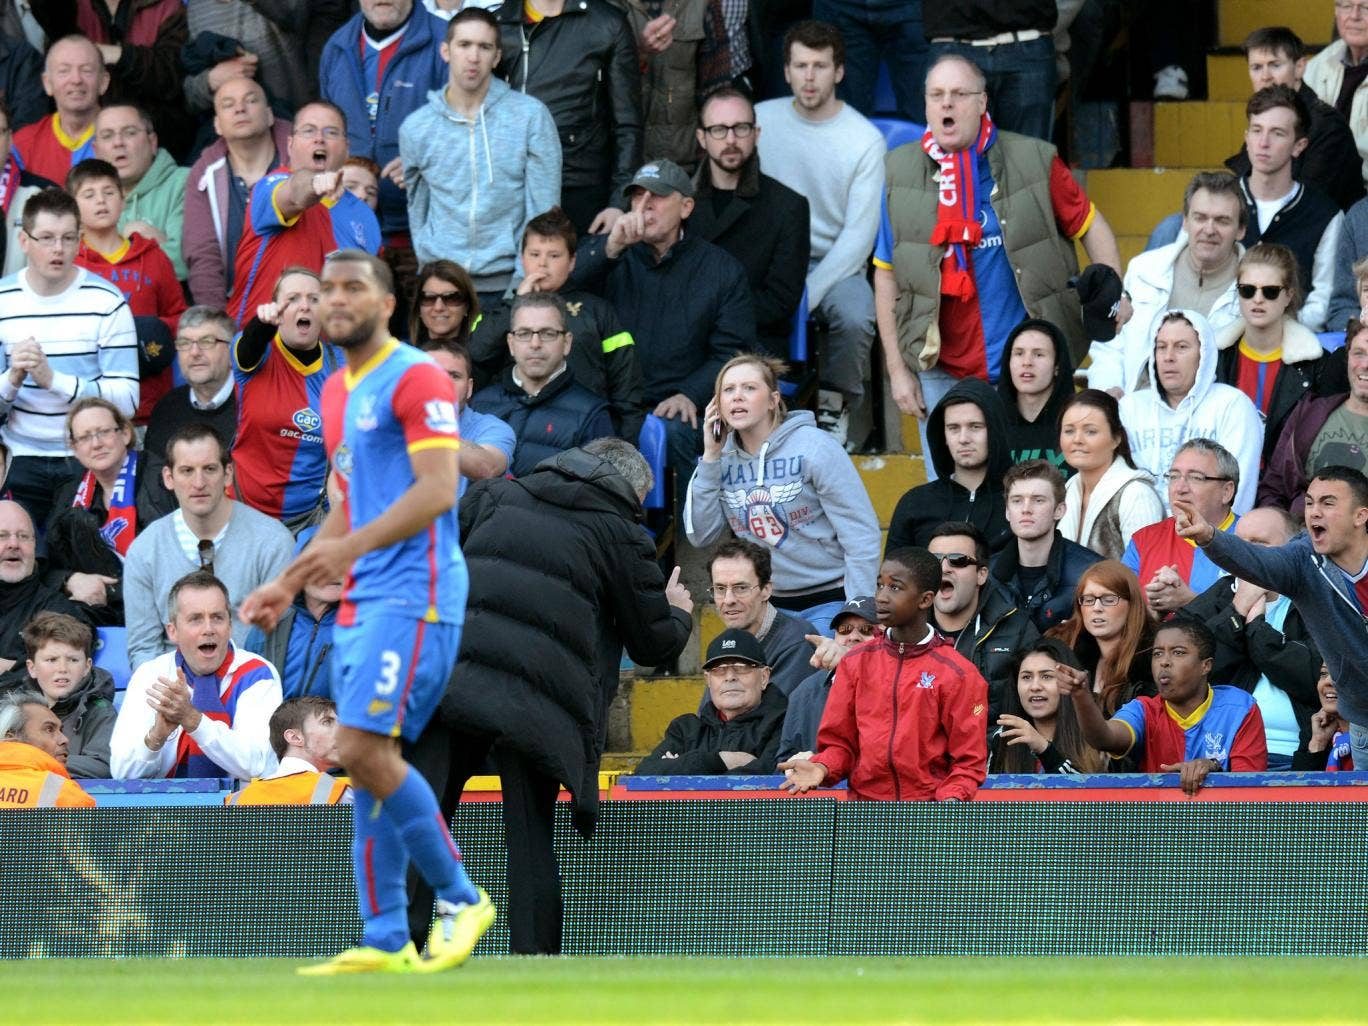 Jose Mourinho having words with a Crystal Palace ballboy, who he felt was time wasting late on during Saturday's game